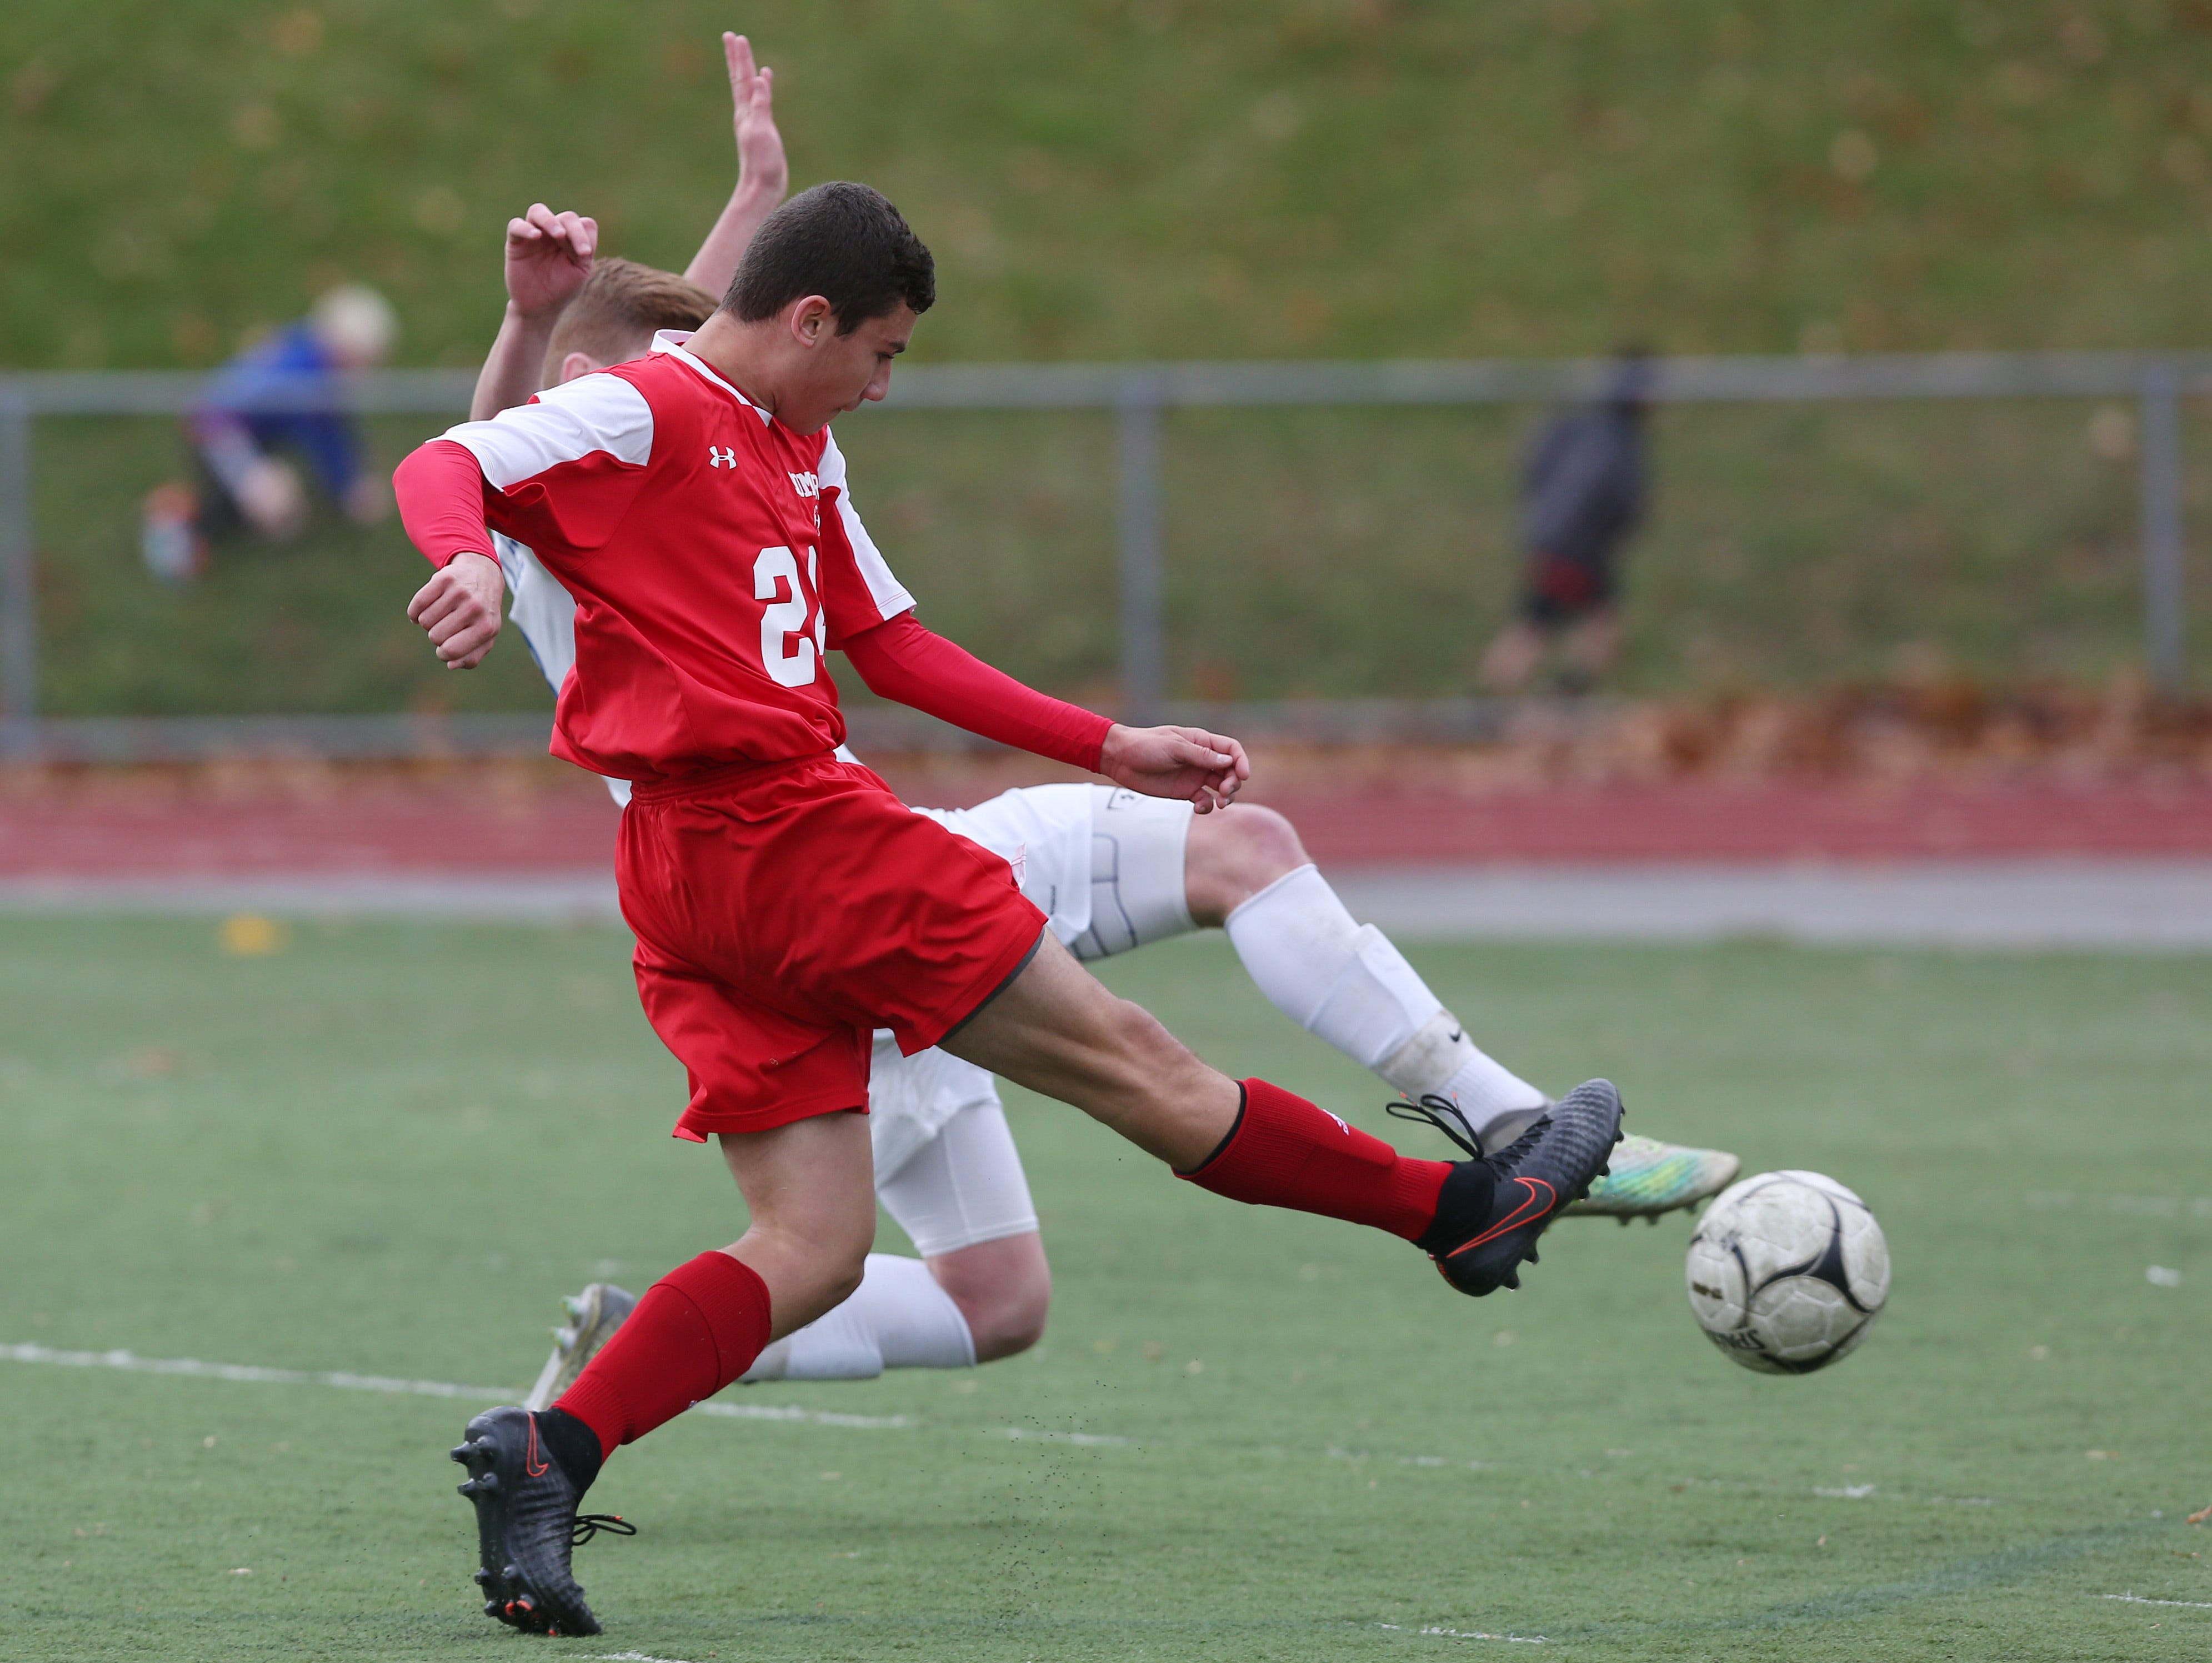 Somers' Andrew Lasher (24) gets a shot by a Pearl River defender for what would prove to be the game winning goal in the Section 1 Class A championship game at Lakeland High School in Shrub Oak High School Oct. 29, 2016. Somers won the game 1-0.